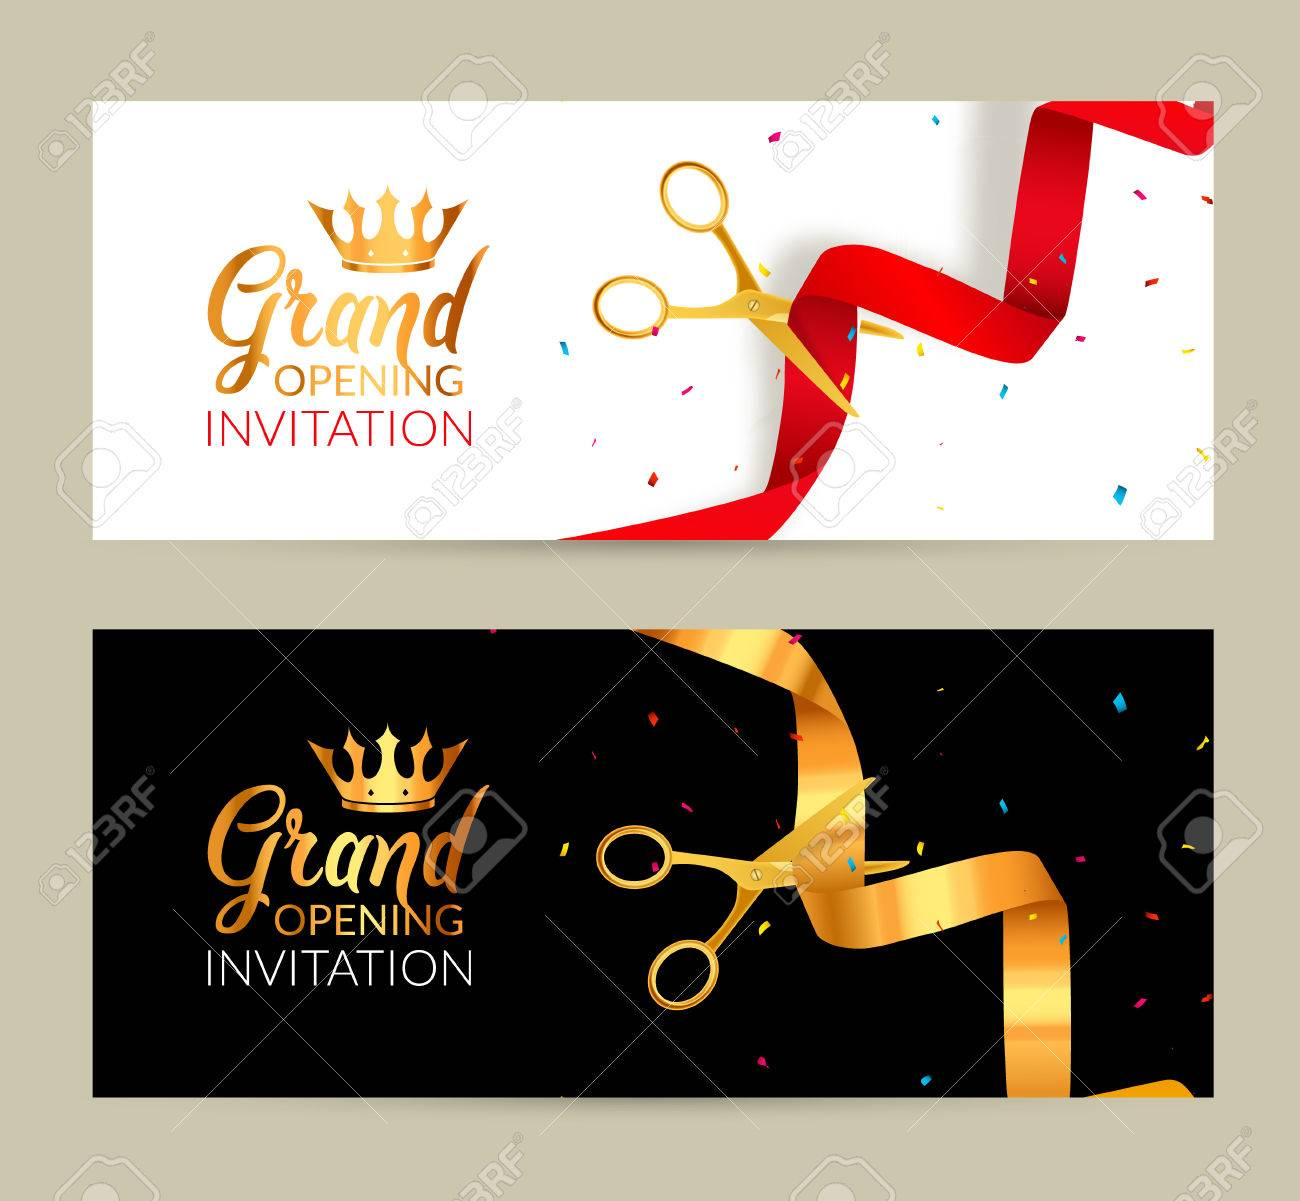 Grand Opening invitation banner. Golden Ribbon and red ribbon cut ceremony event. Grand opening celebration card. - 68591641